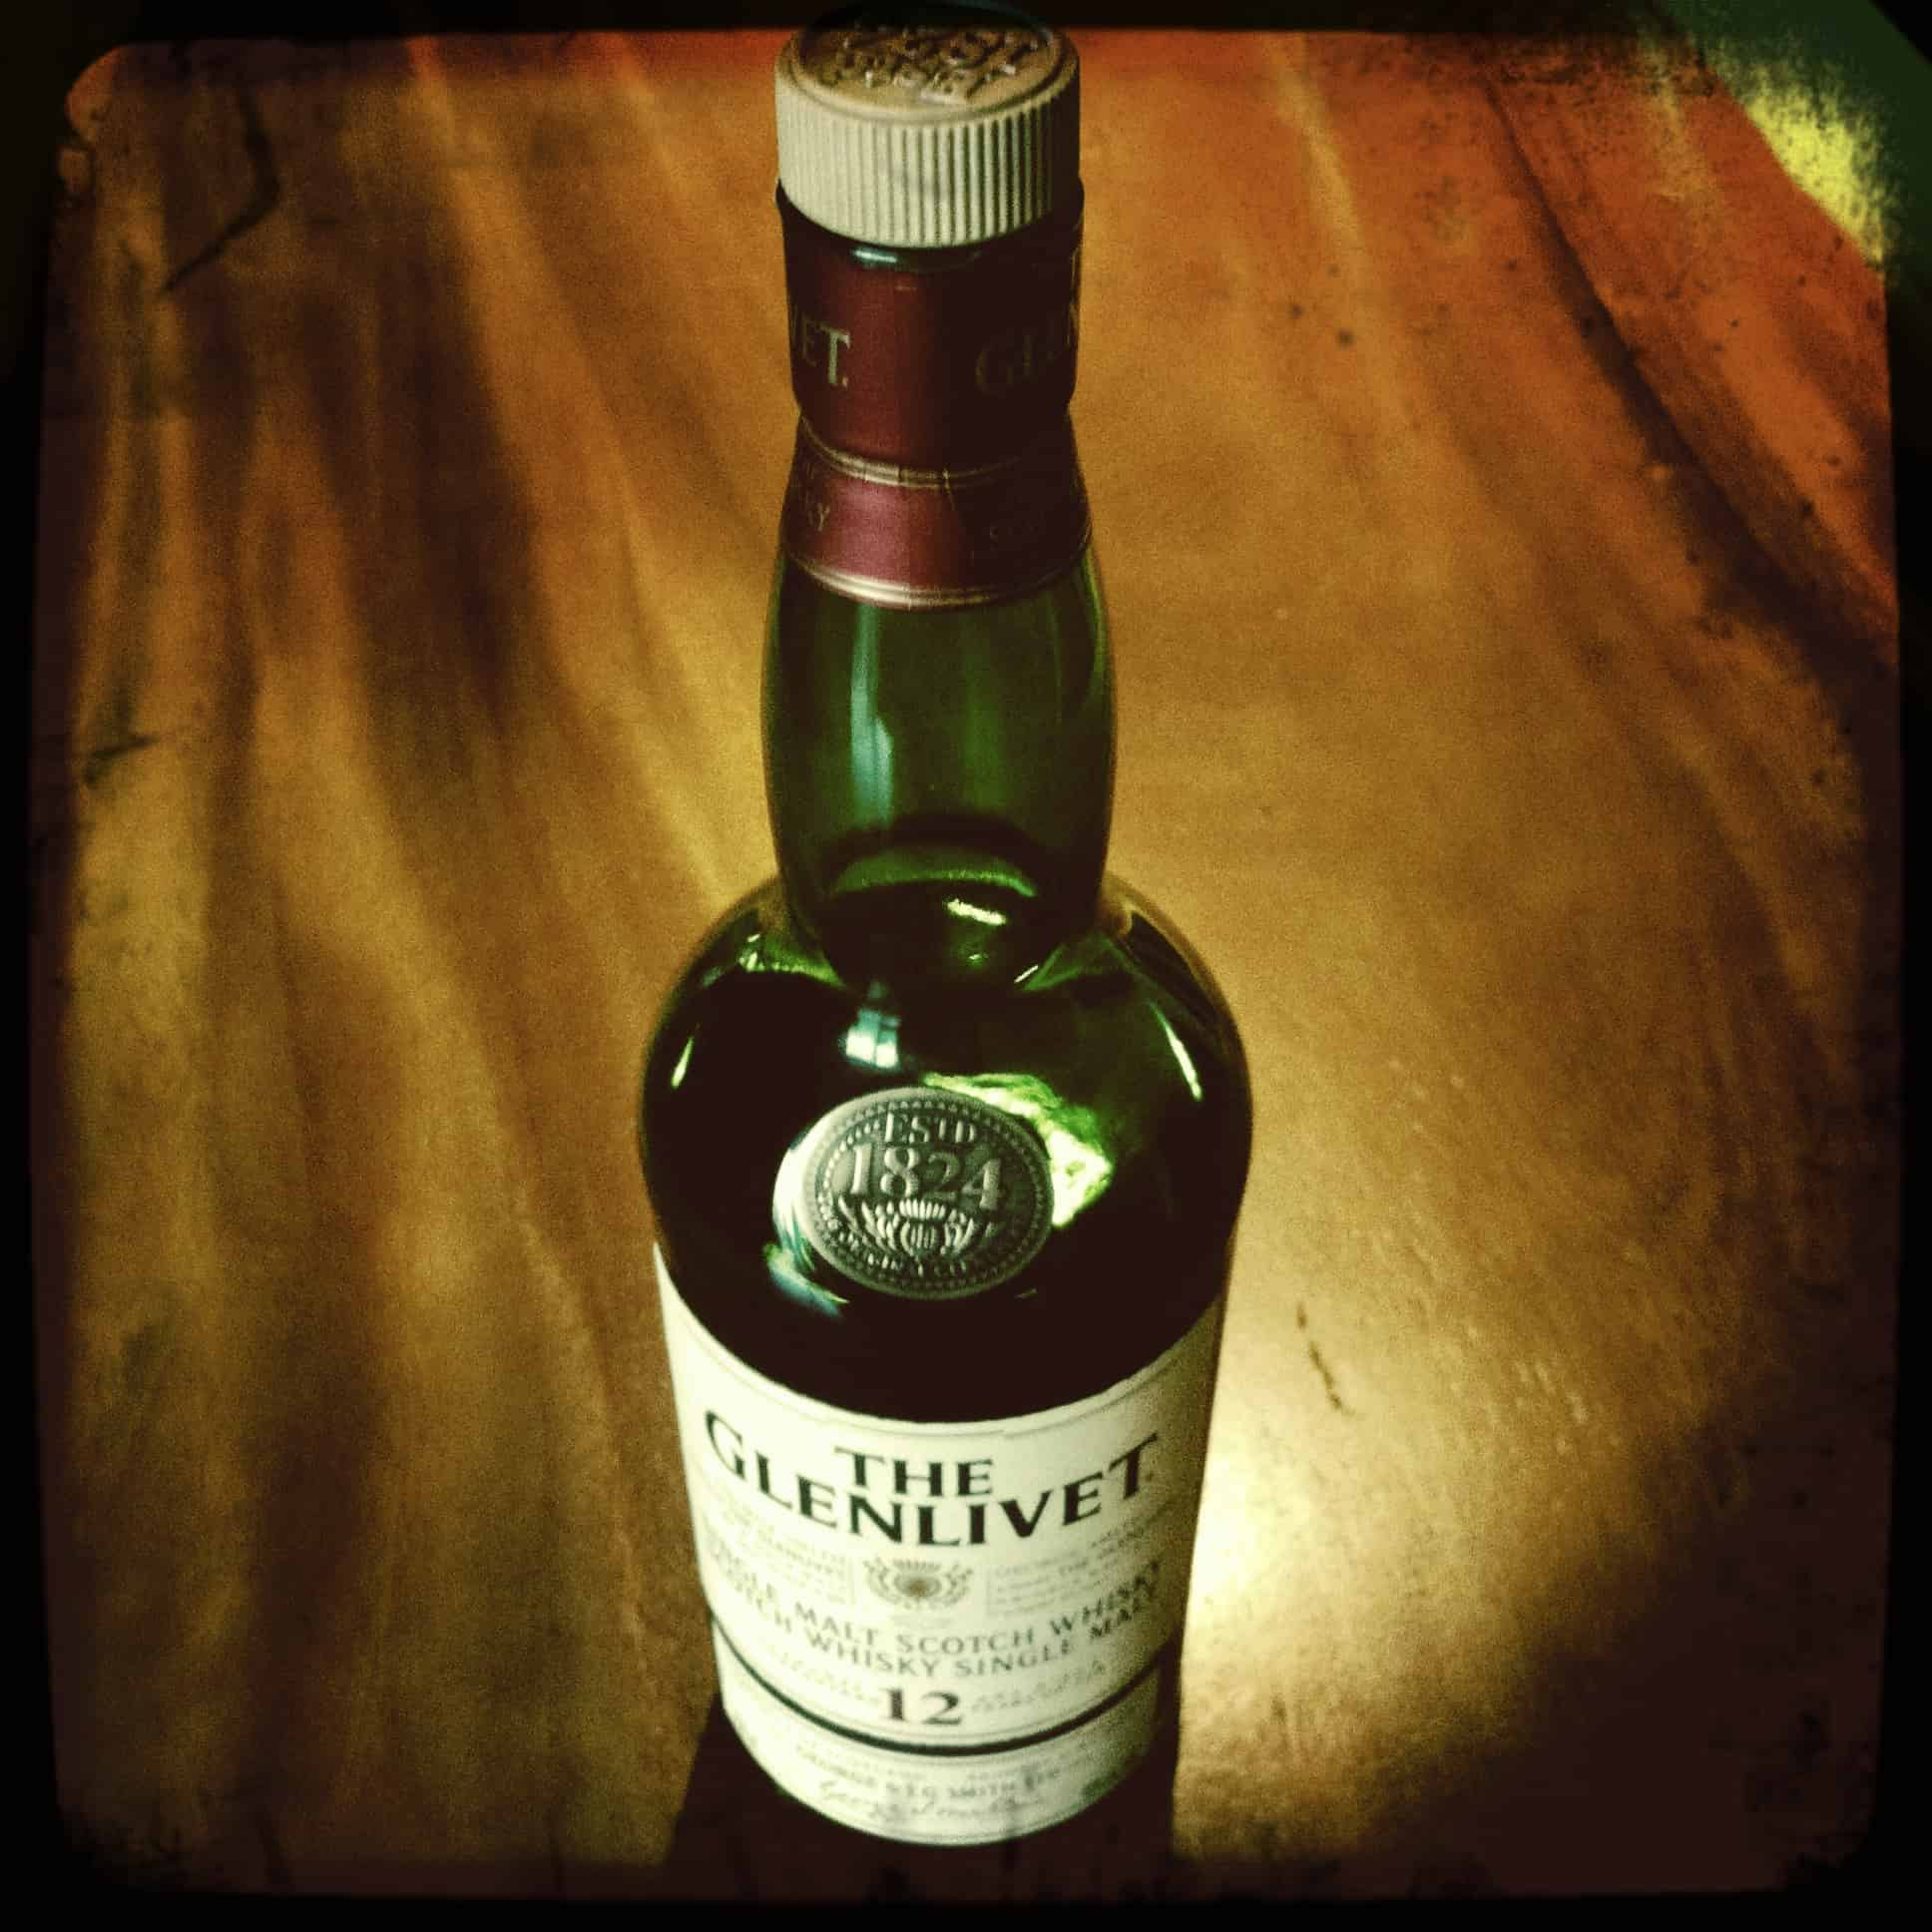 Glenlivet – scotch under 50